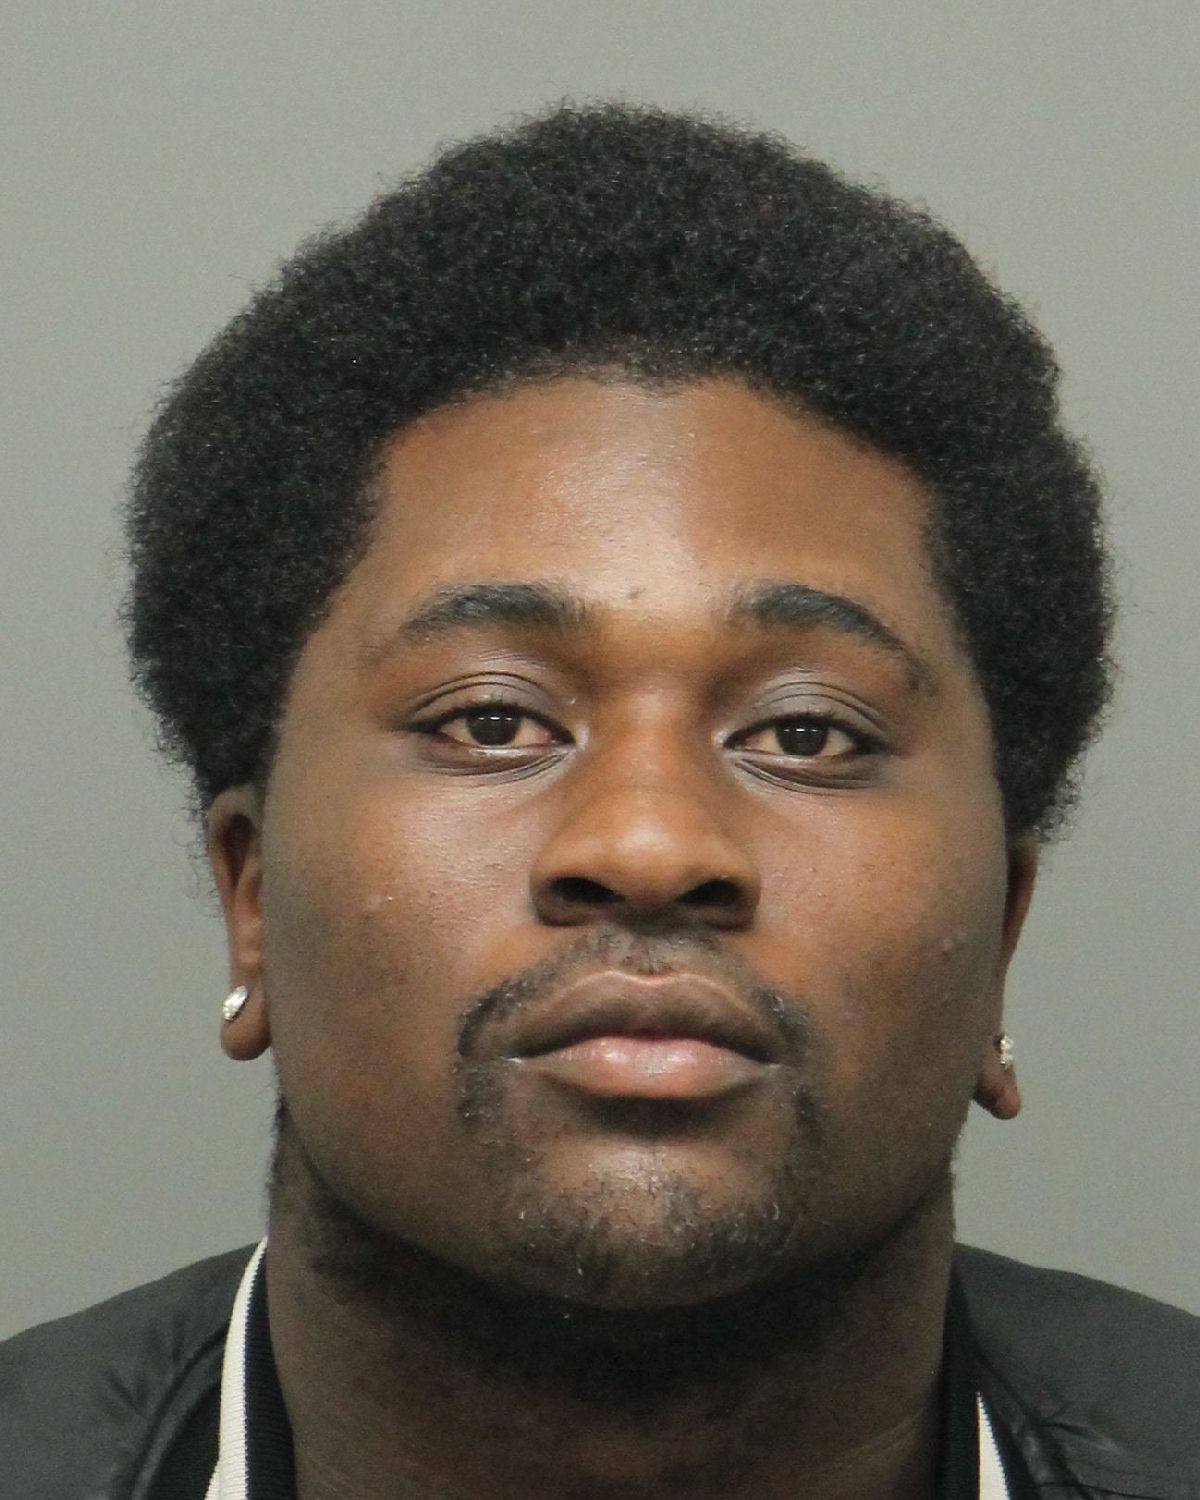 JAMEL WILLIAMS MARCUS Info, Photos, Data, and More / Wake County Public Records